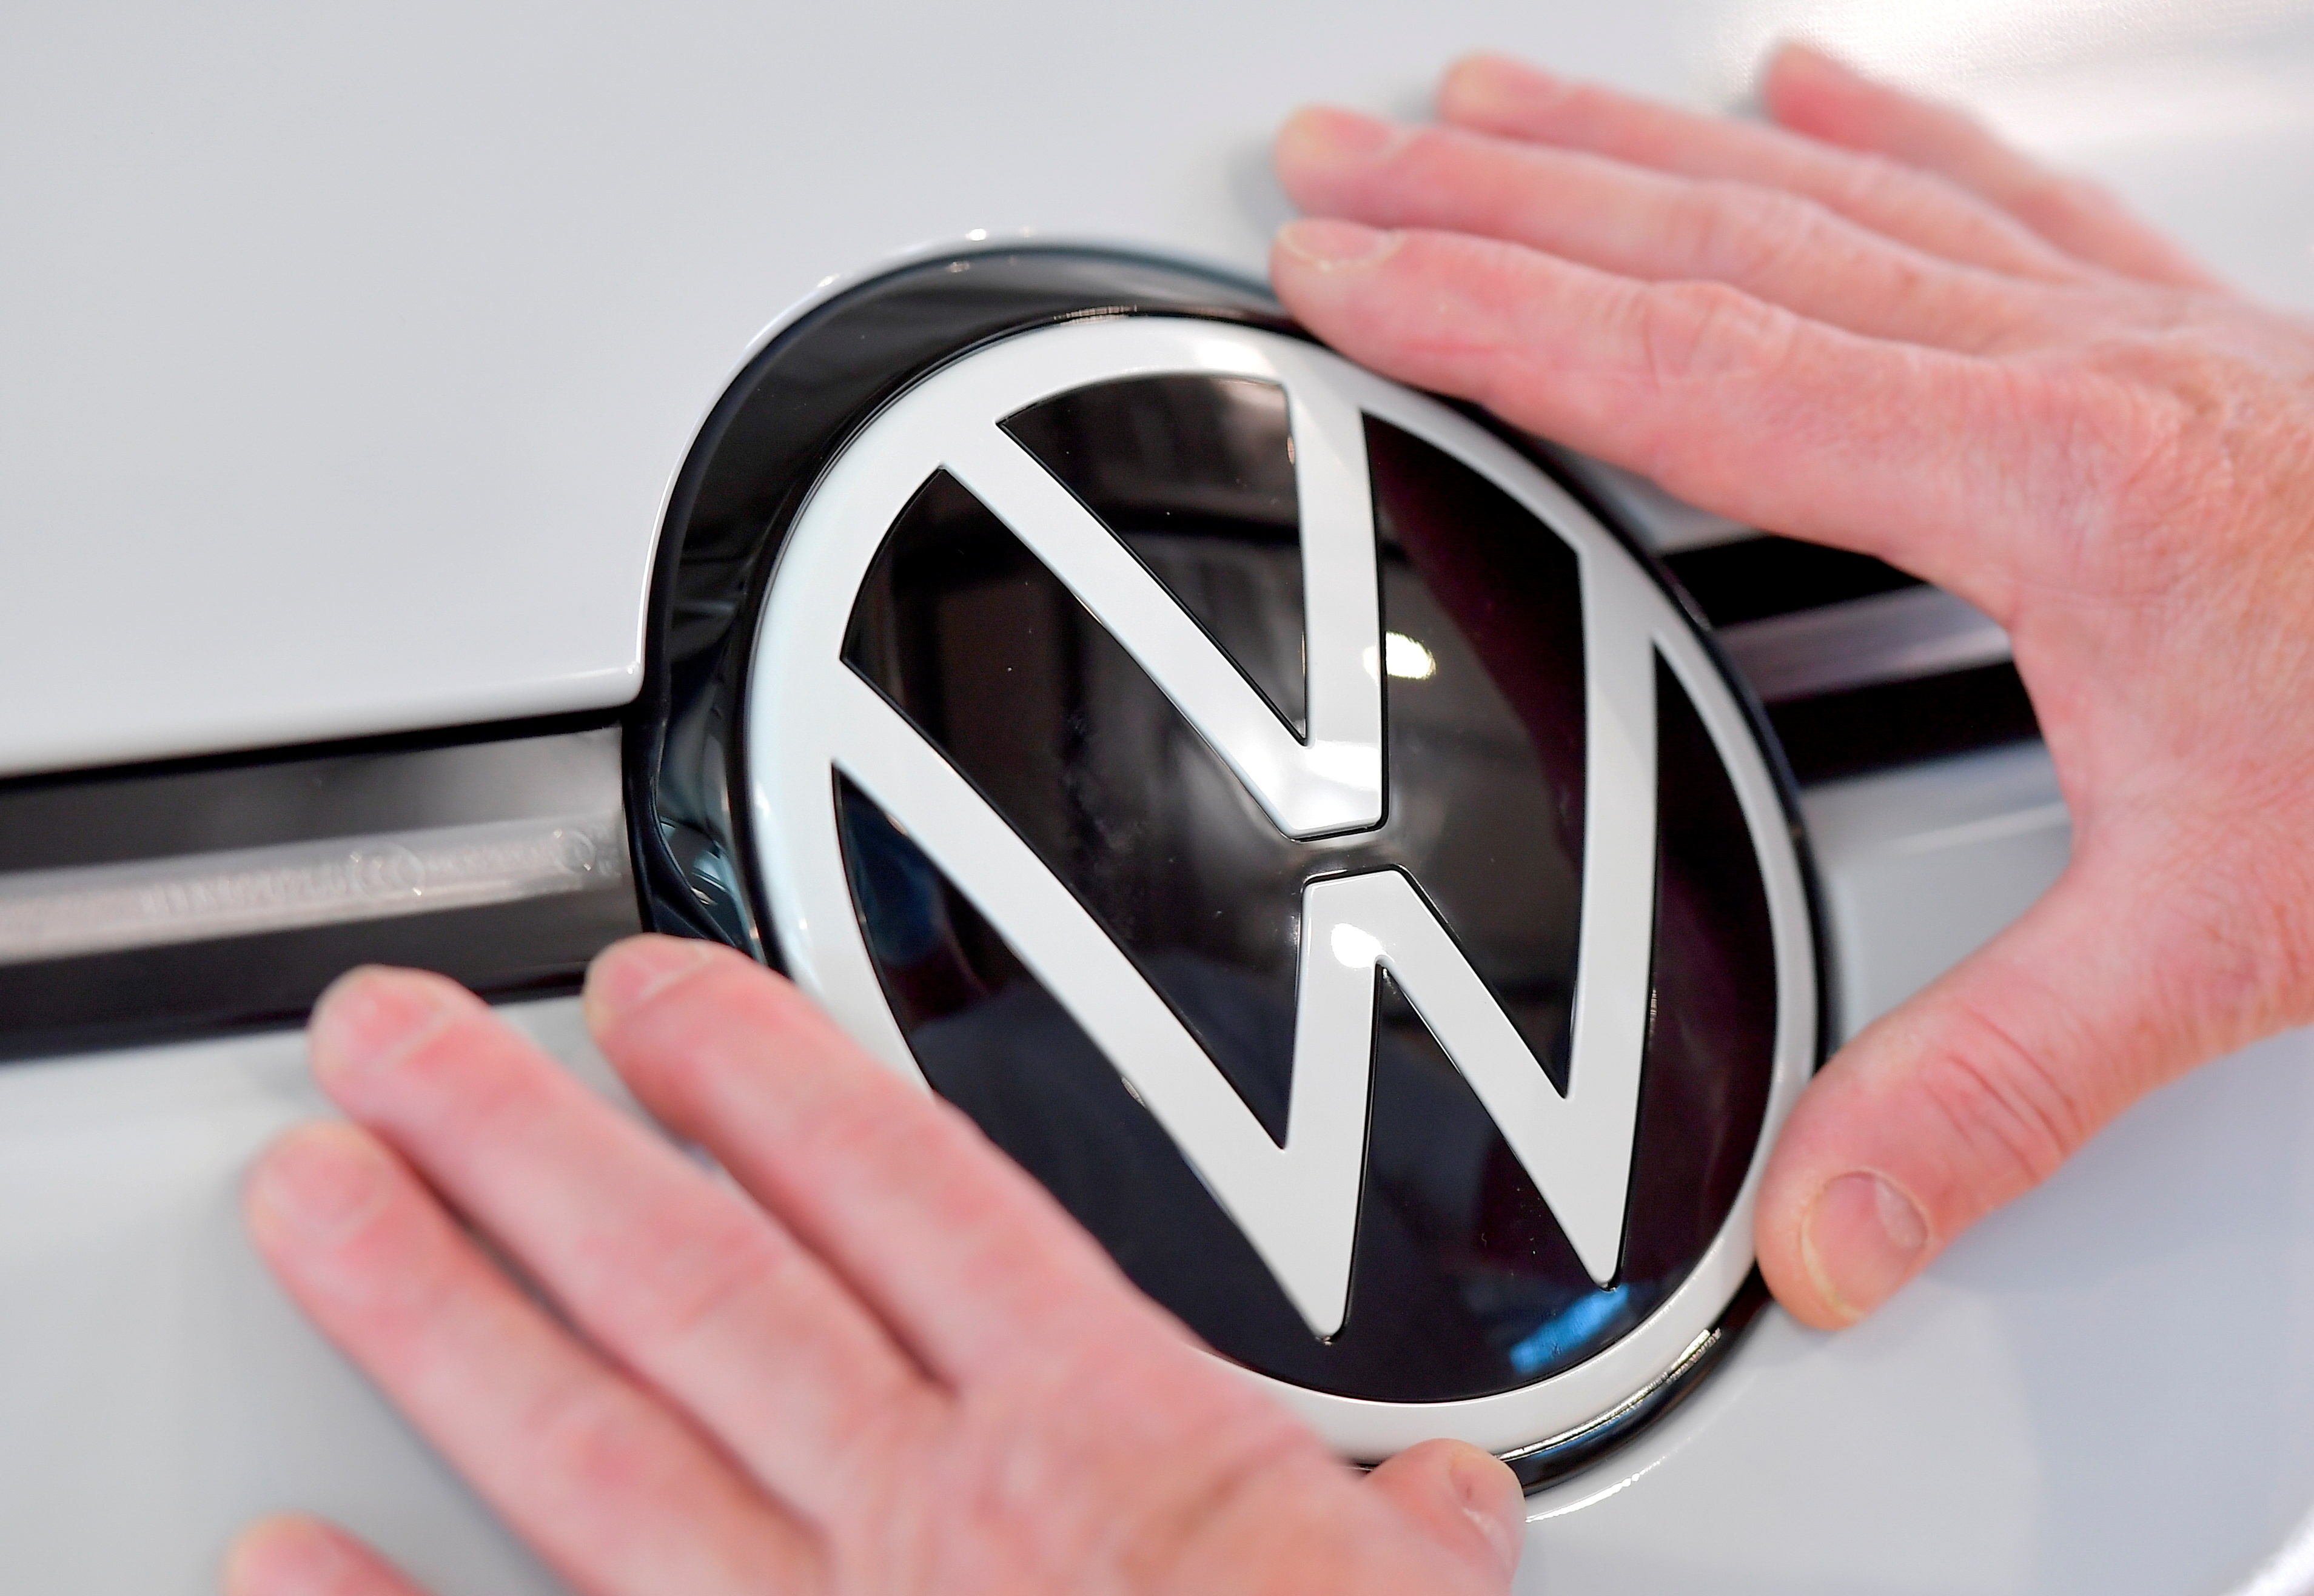 A technician fixes a VW sign in the assembly line of German carmaker Volkswagen's electric ID. 3 car in Dresden, Germany, June 8, 2021. REUTERS/Matthias Rietschel